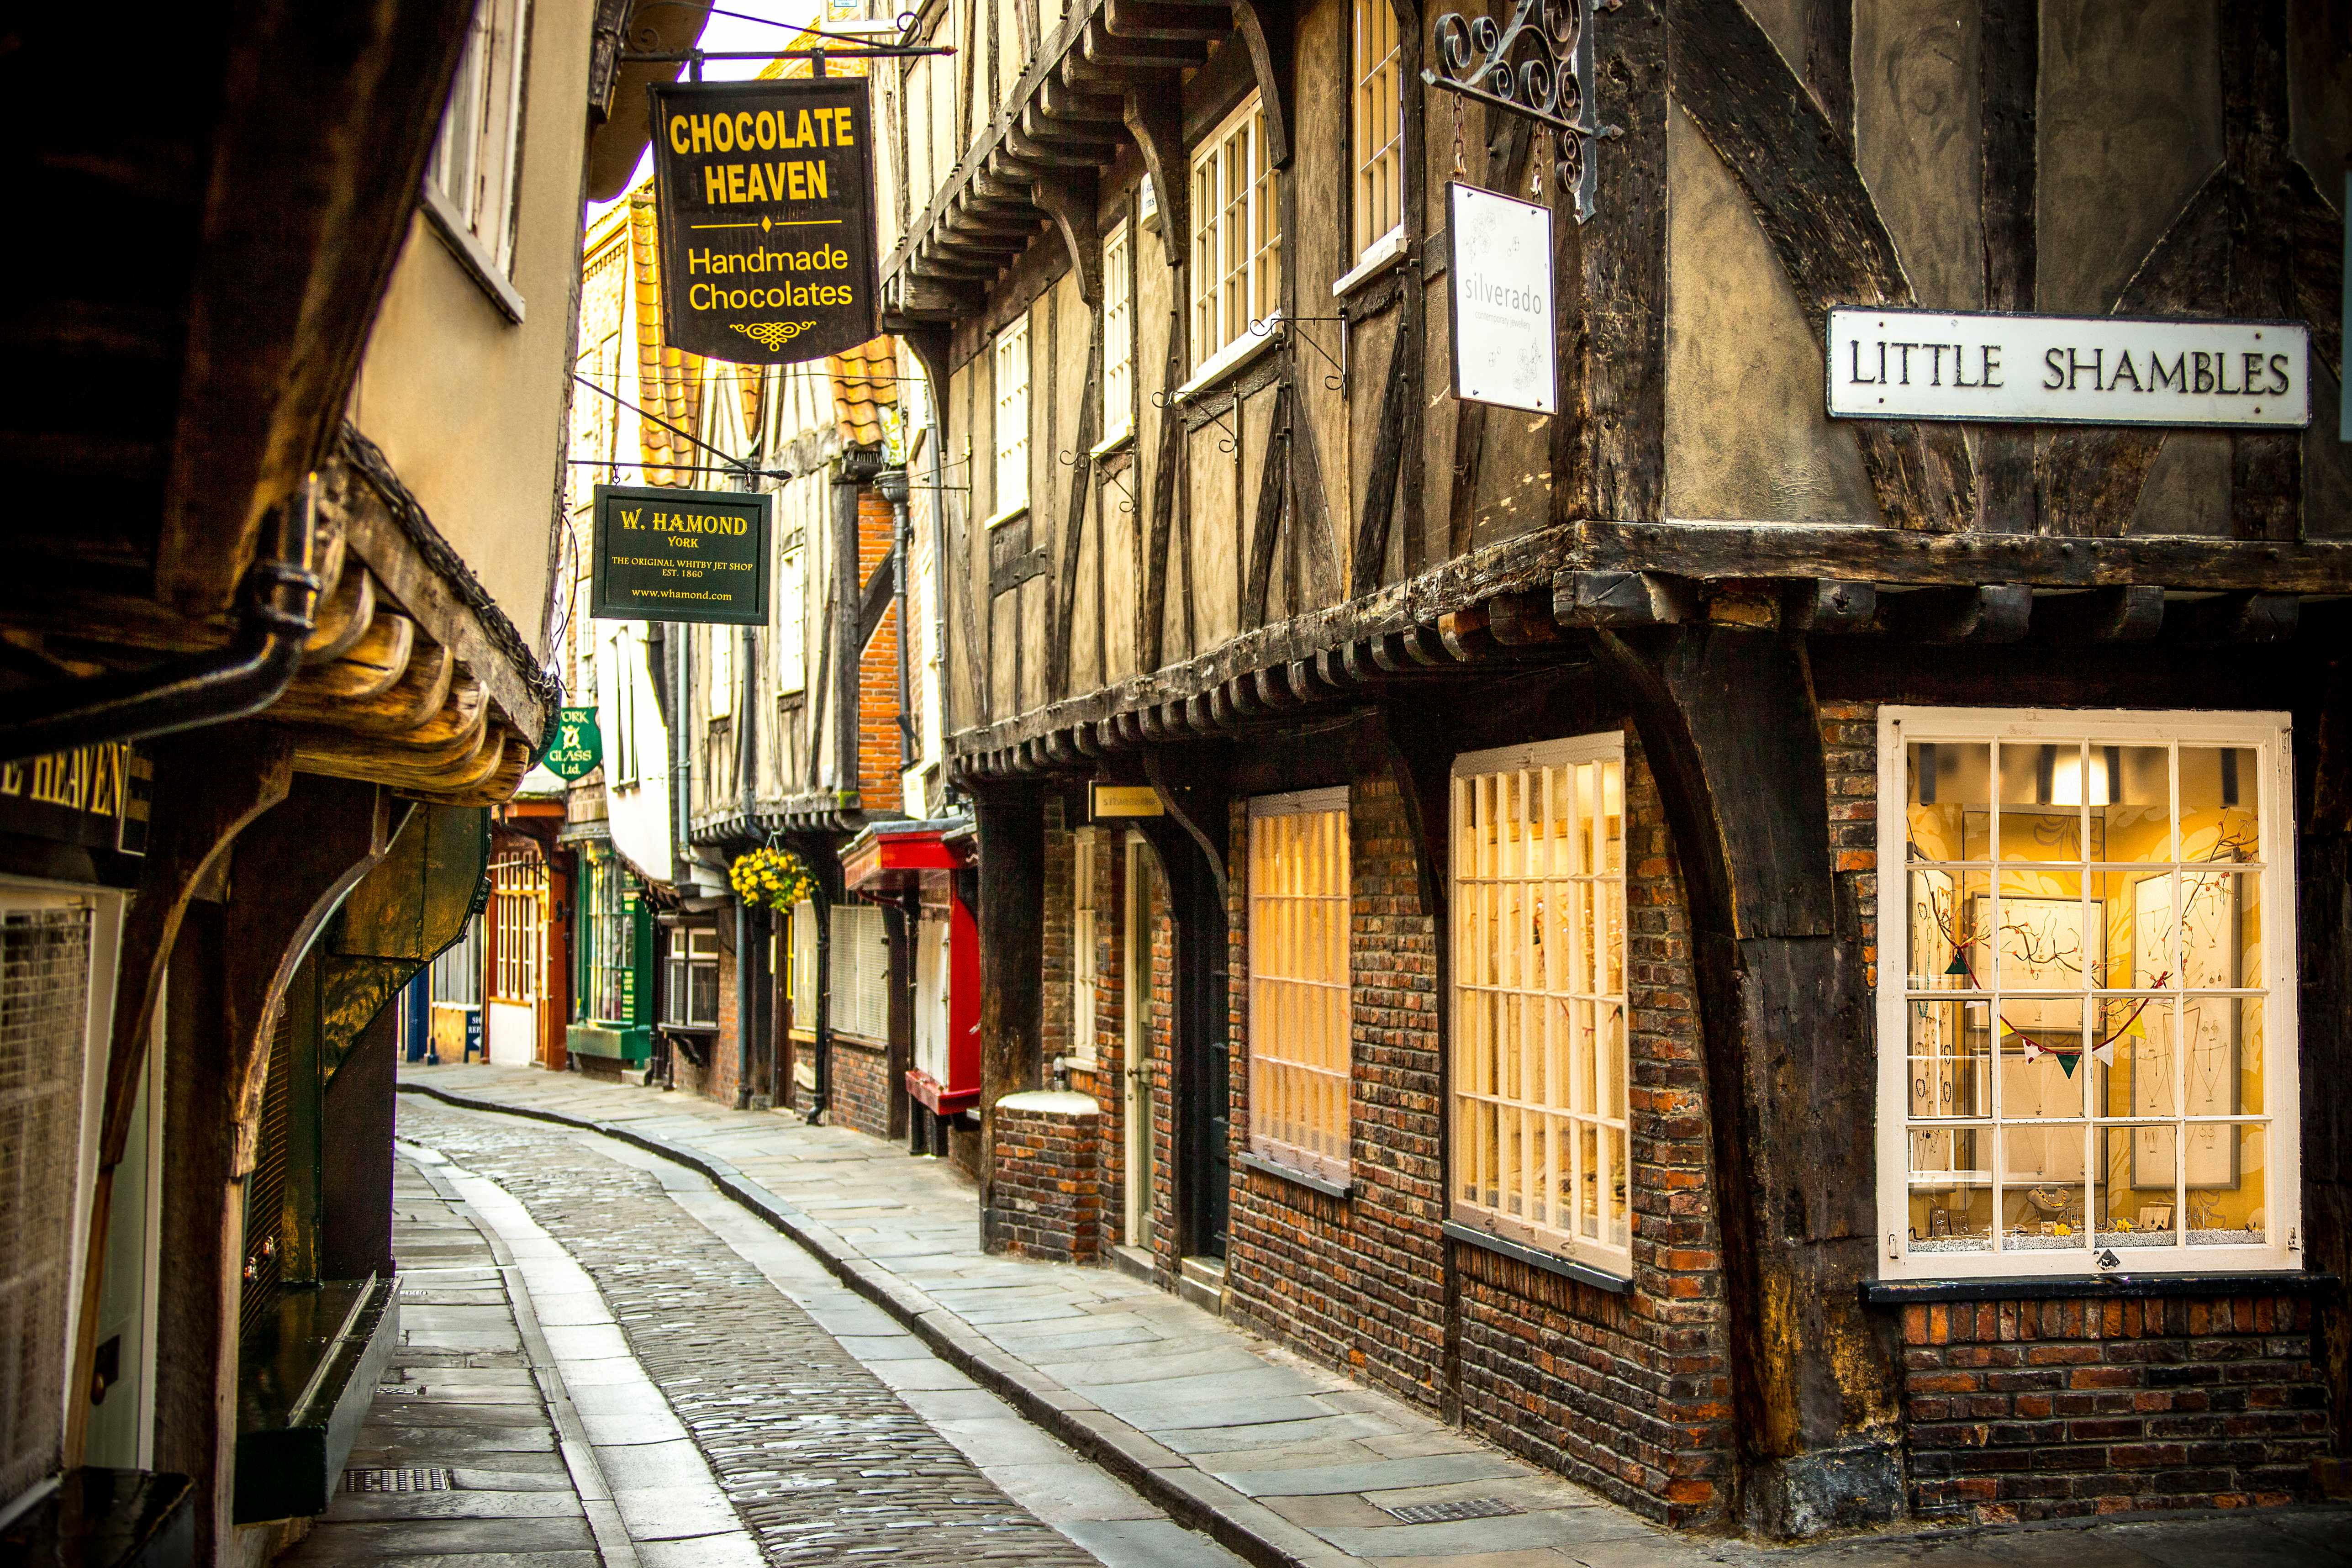 An old street in York, England, with overhanging timber-framed buildings, some dating back as far as the 14th century. (Photo by VisitBritain/Andrew Pickett via Getty Images)